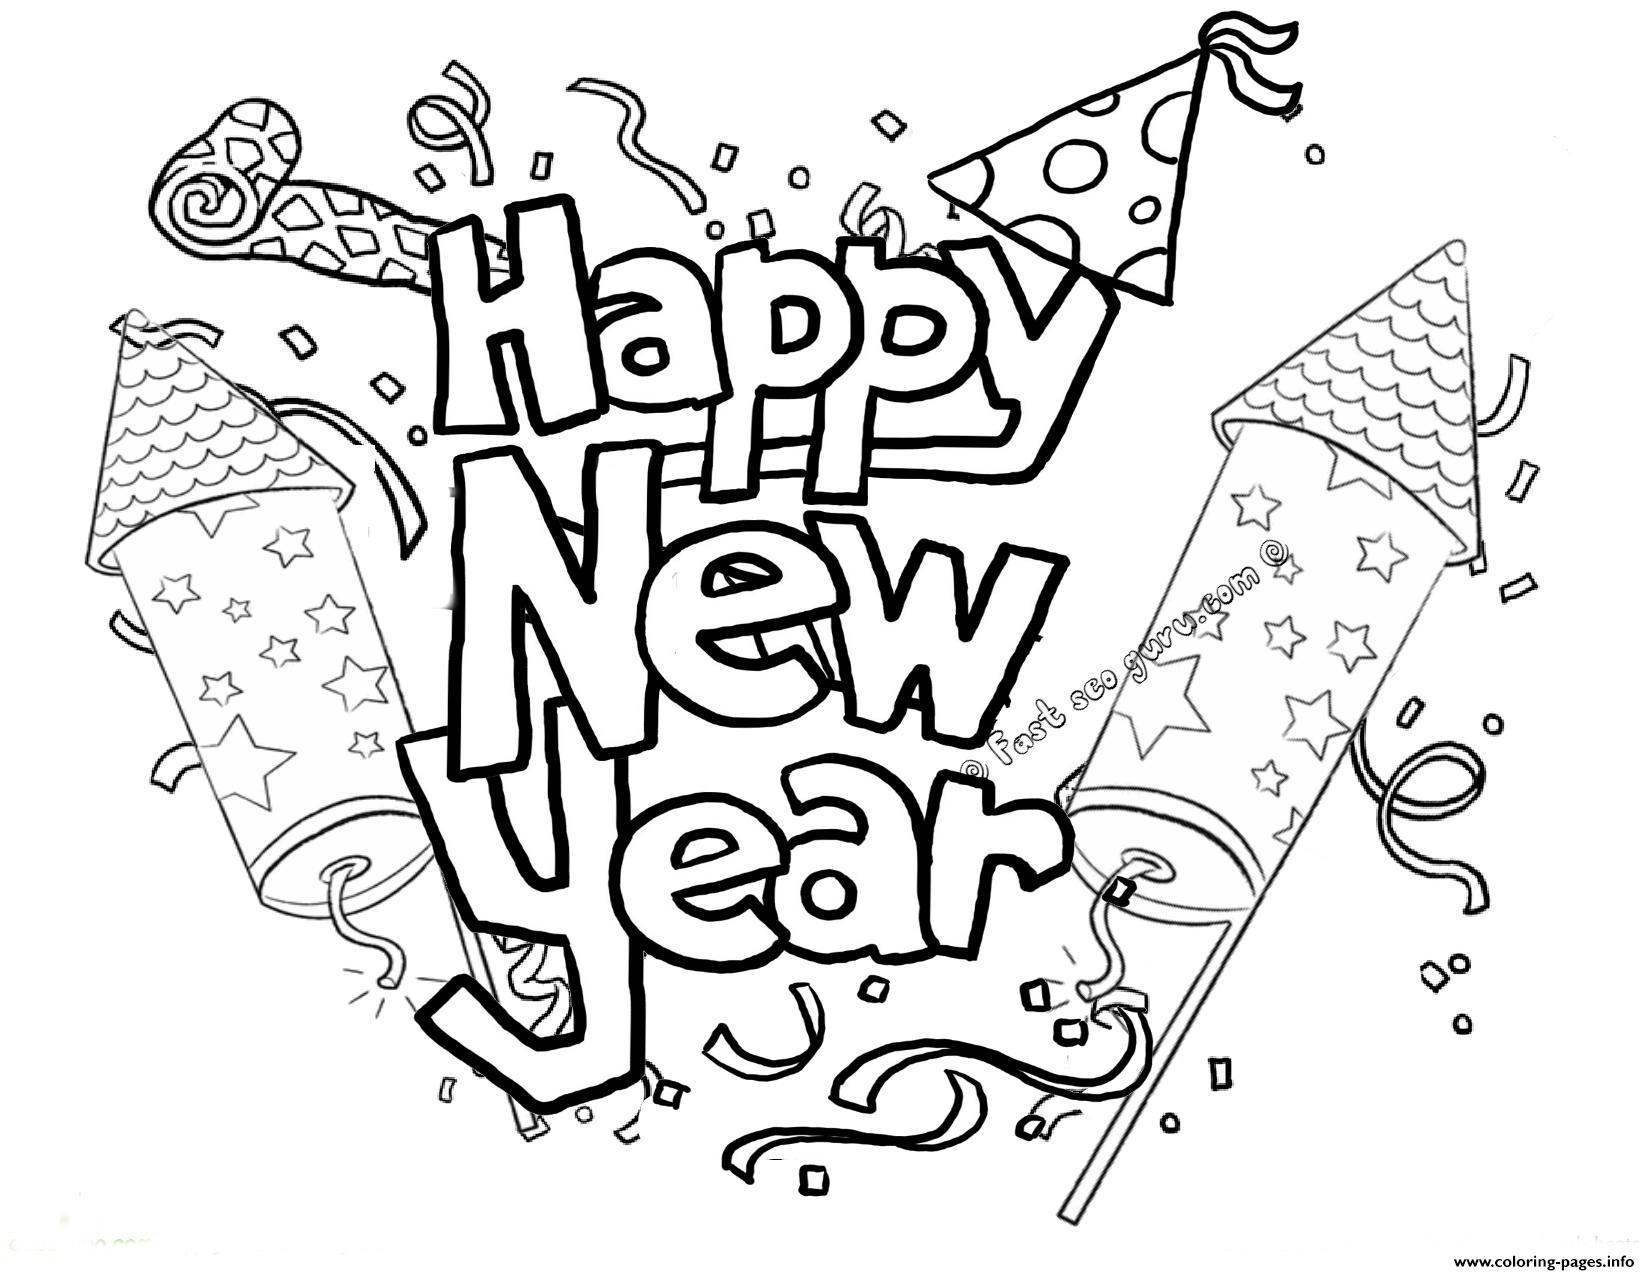 image relating to Happy New Year Printable called Joyful Fresh new 12 months Printable 2 Coloring Web pages Printable